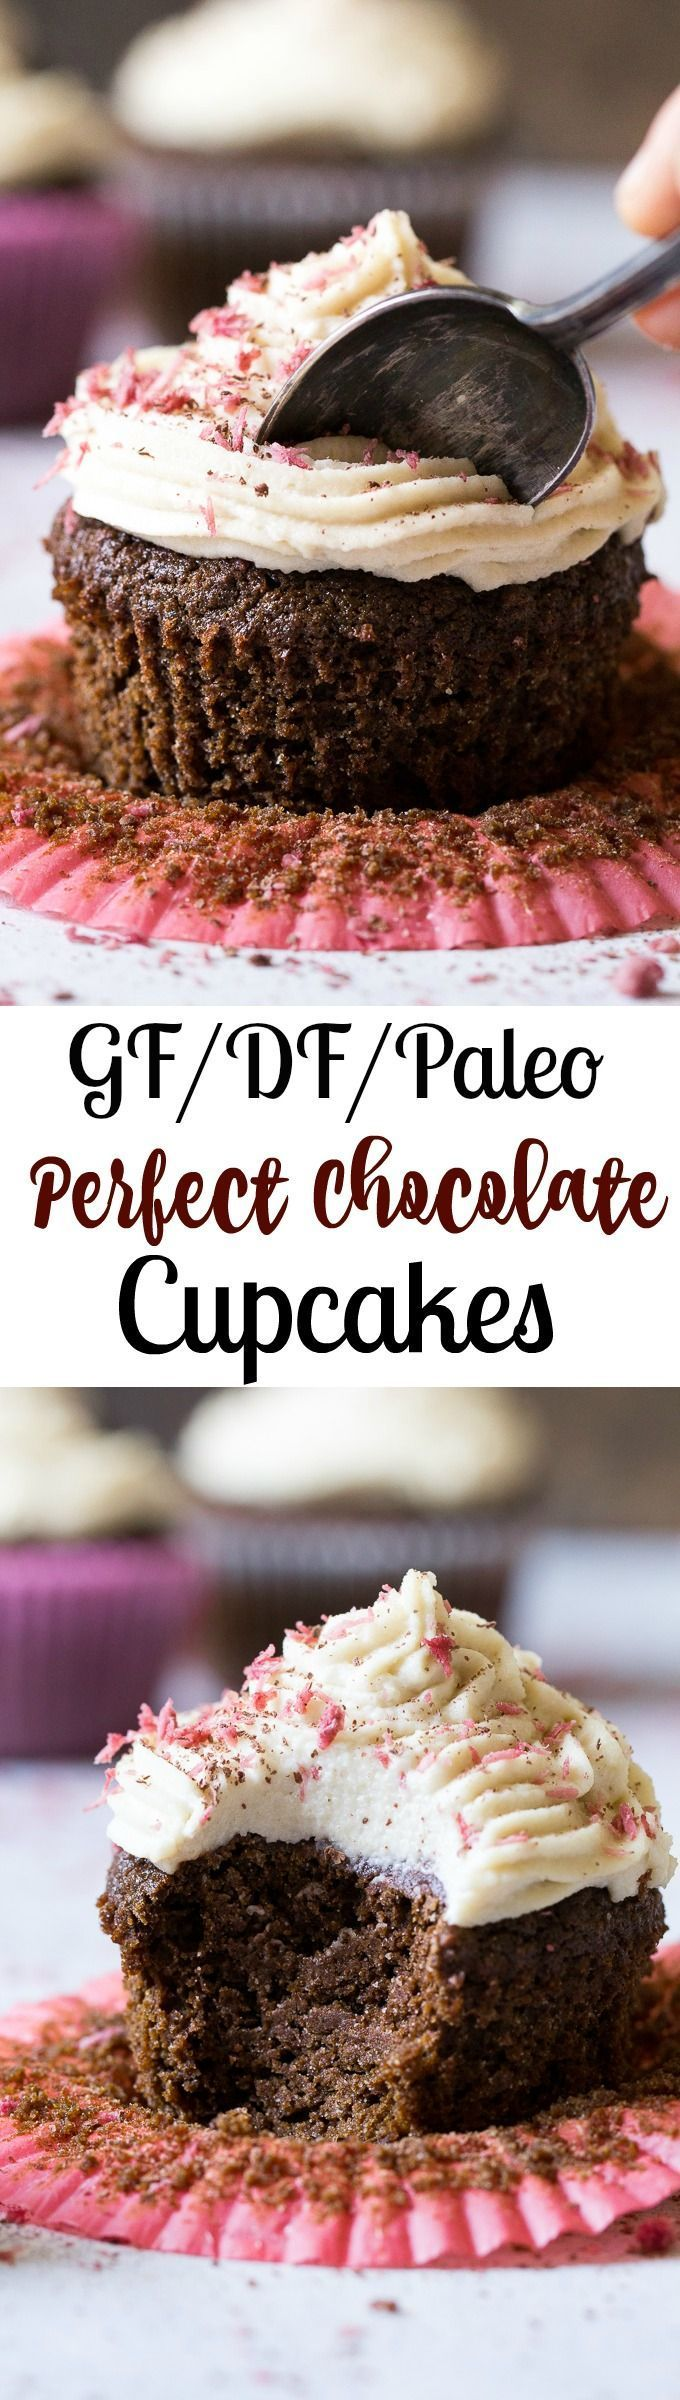 Paleo Chocolate Cupcakes topped with coconut cashew cream cheese frosting and pink coconut sprinkles! Gluten-free, dairy-free